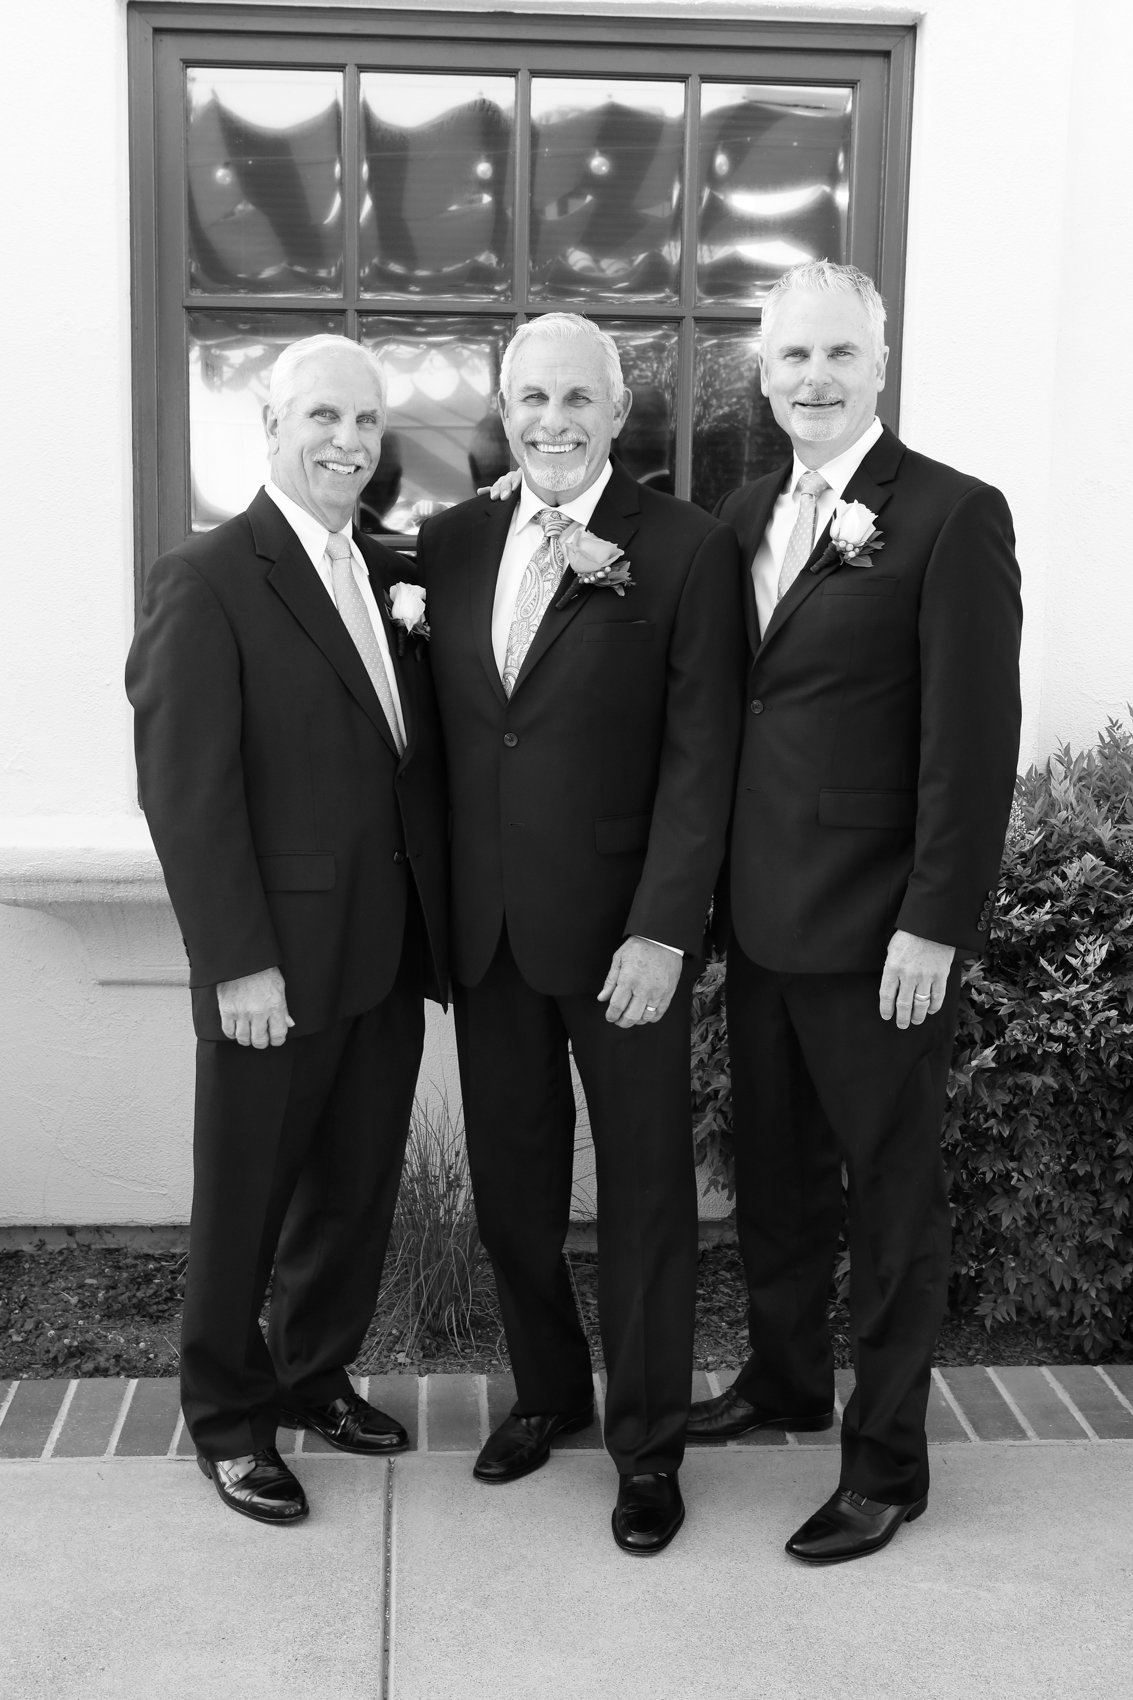 Wedding portraits deneffe studios photography, groom and groomsmen black and white